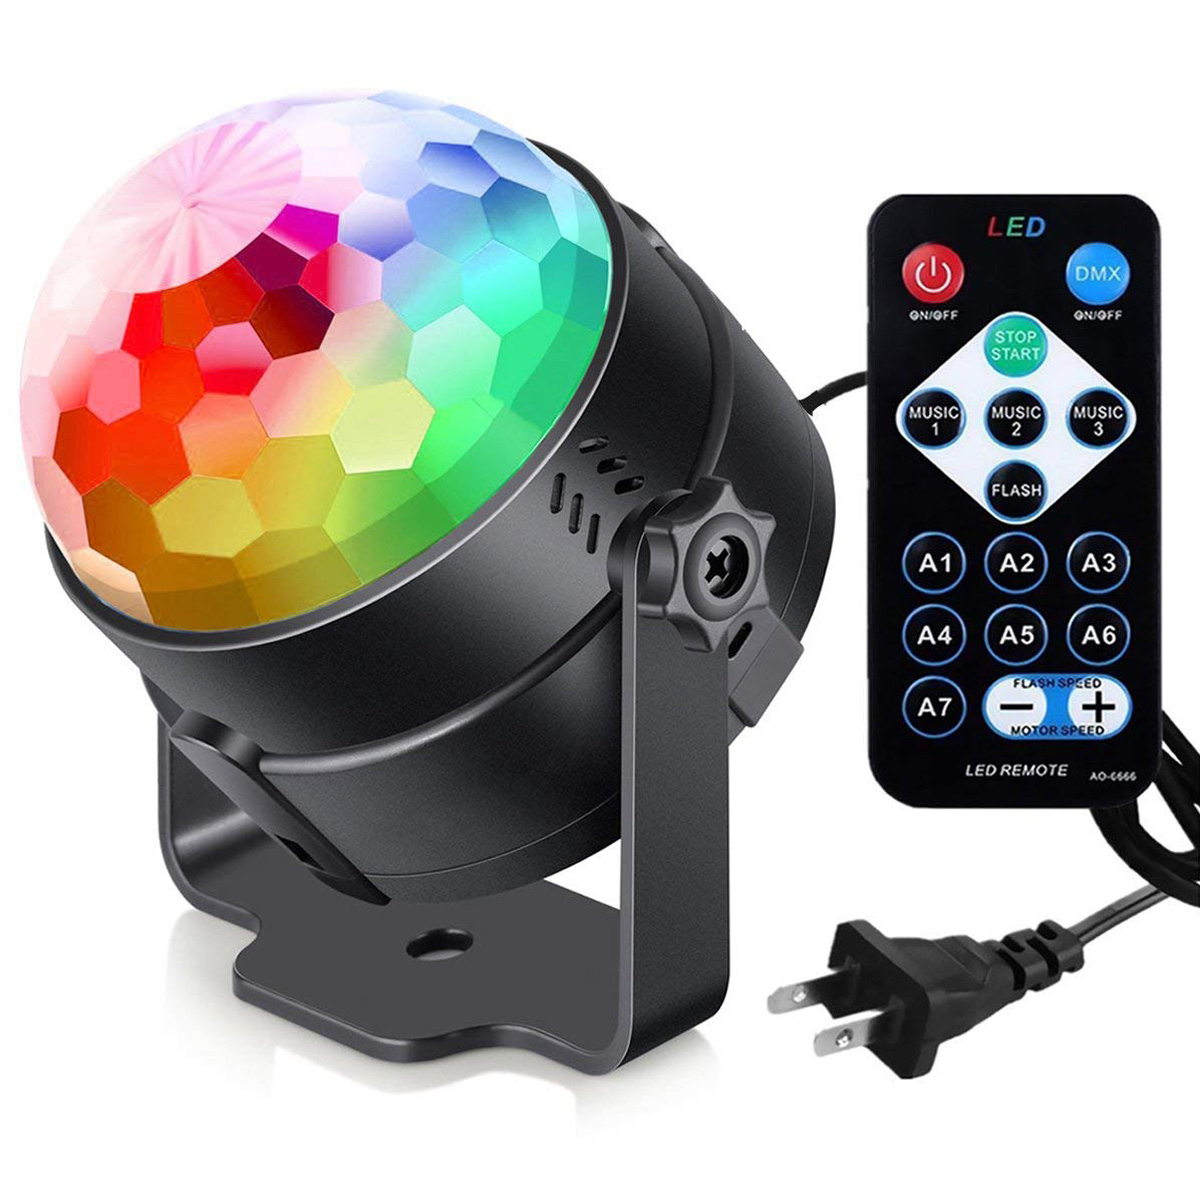 BIFI-Sound Activated Party Lights with Remote Control Dj Lighting, RBG Disco Ball, Strobe Lamp 7 Modes Stage Par Light for HomBIFI-Sound Activated Party Lights with Remote Control Dj Lighting, RBG Disco Ball, Strobe Lamp 7 Modes Stage Par Light for Hom